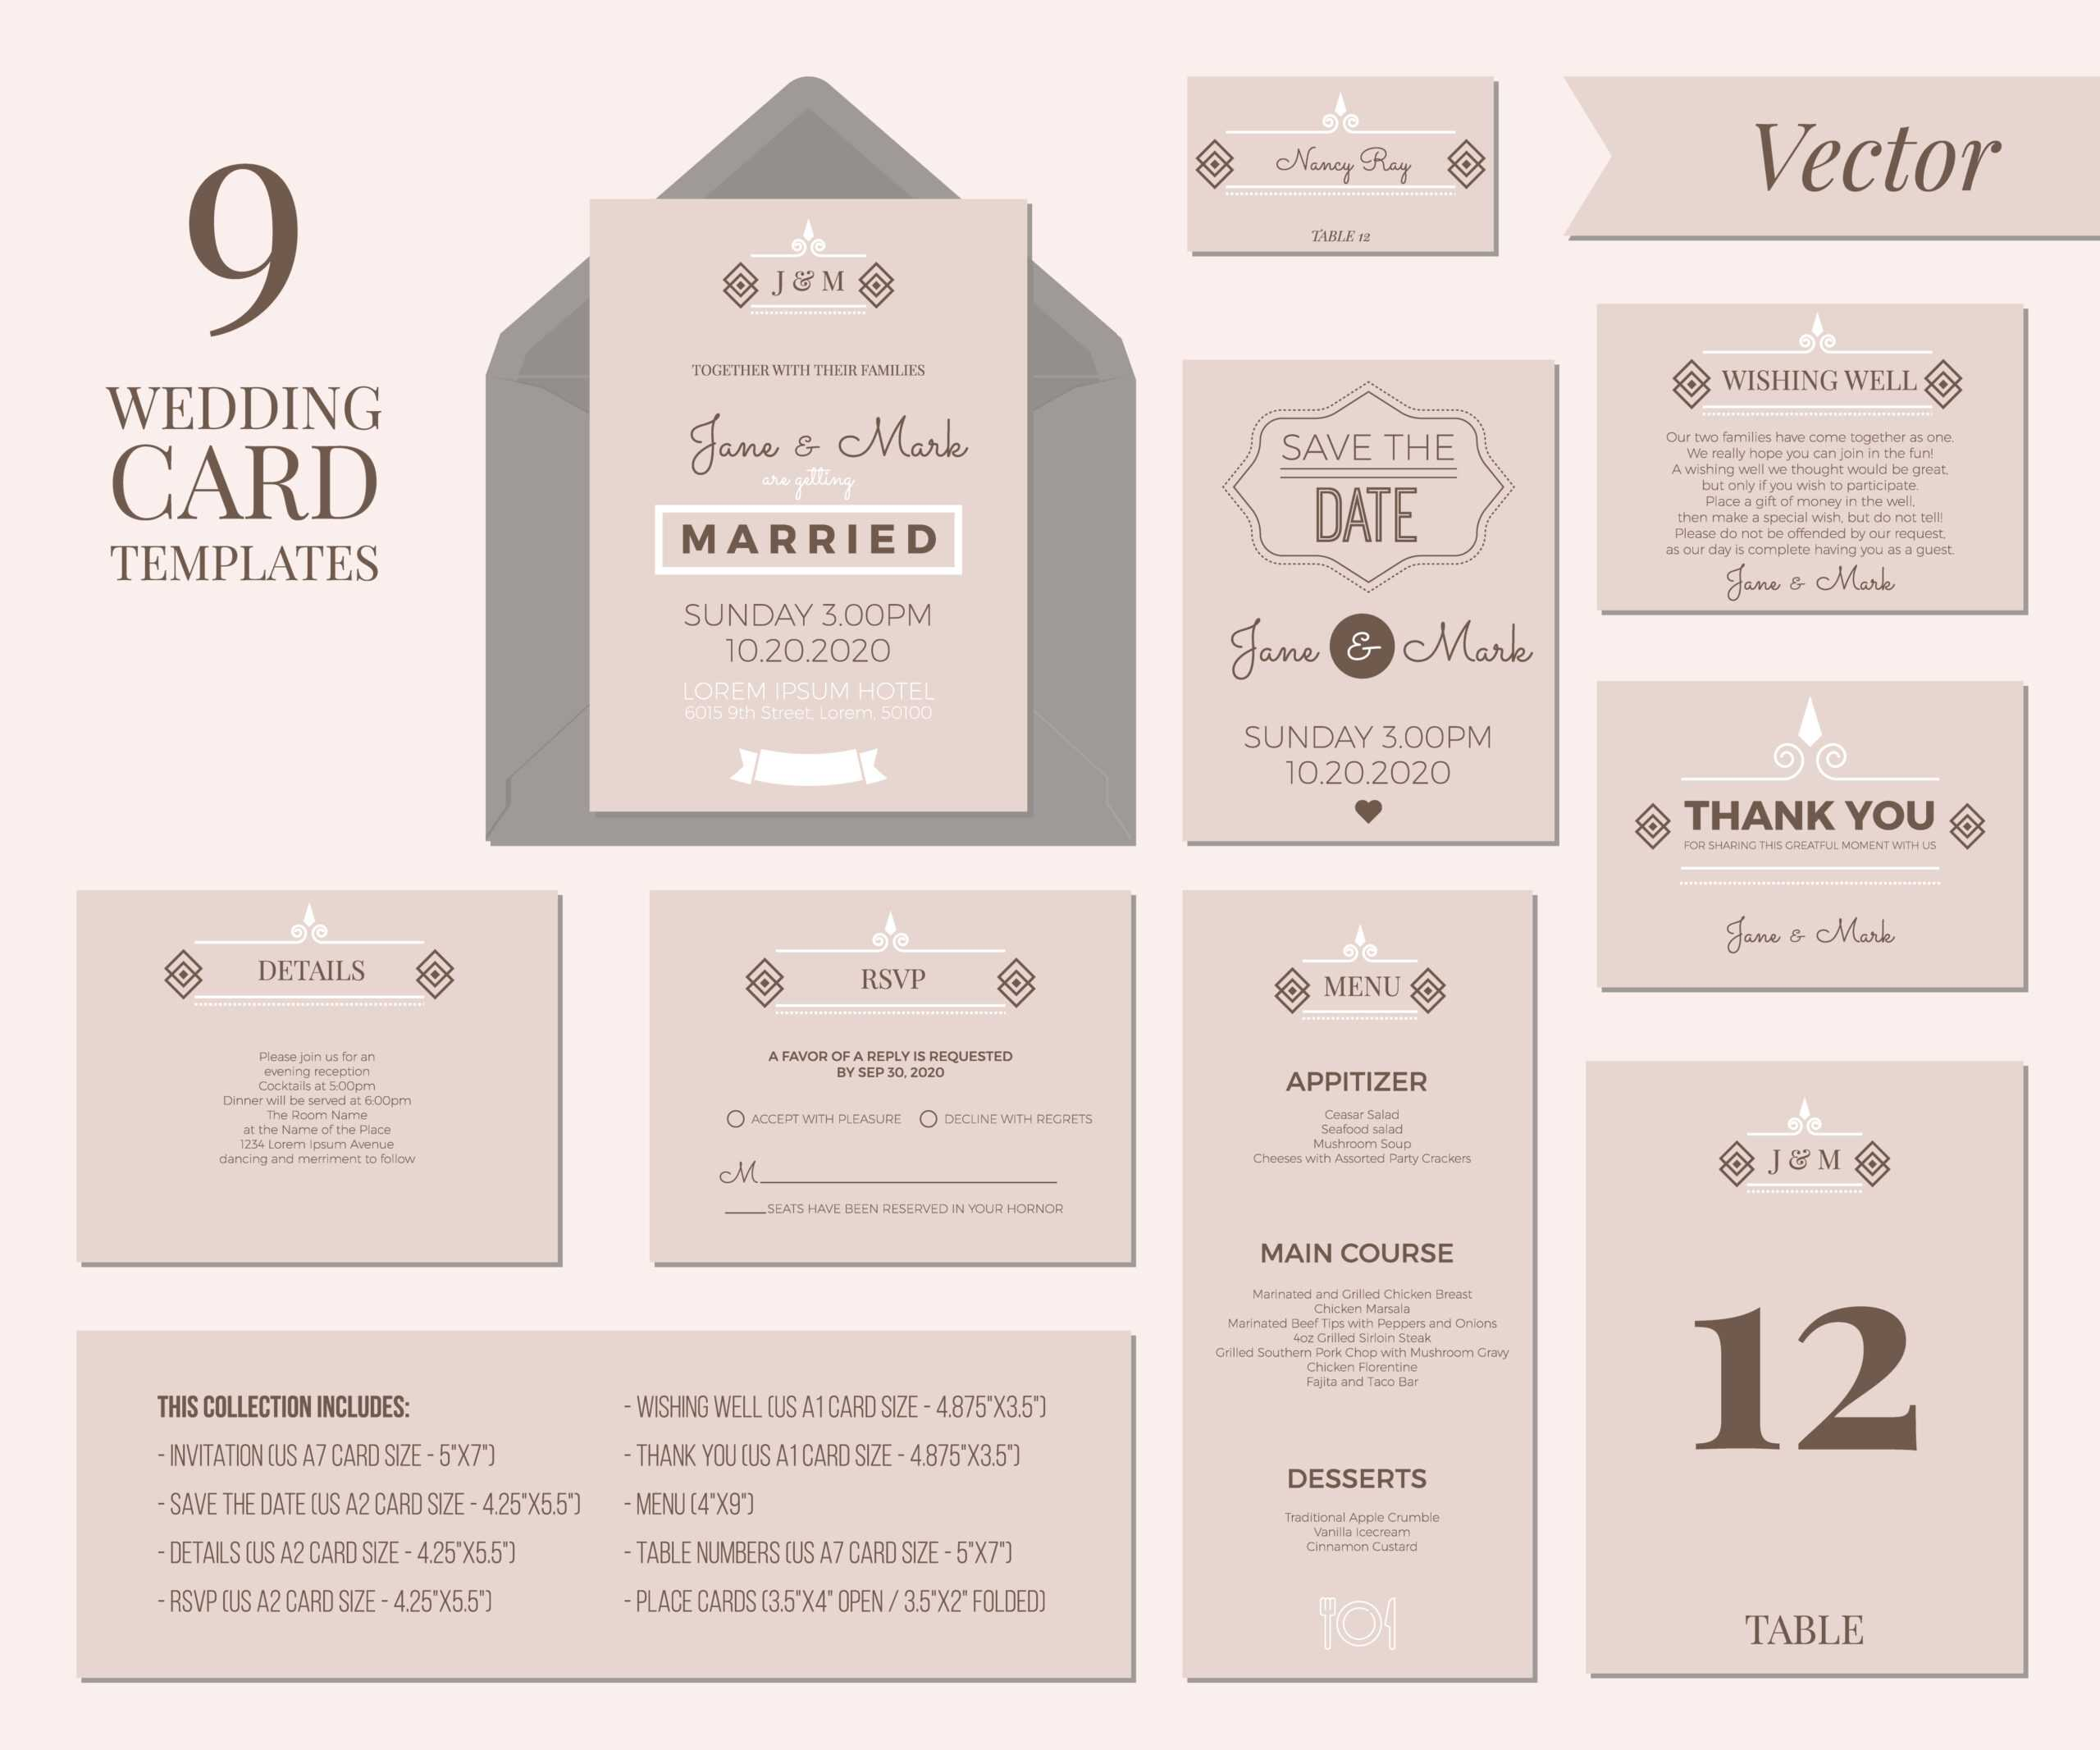 Wedding Invitation Template - Download Free Vectors, Clipart Intended For Wedding Card Size Template